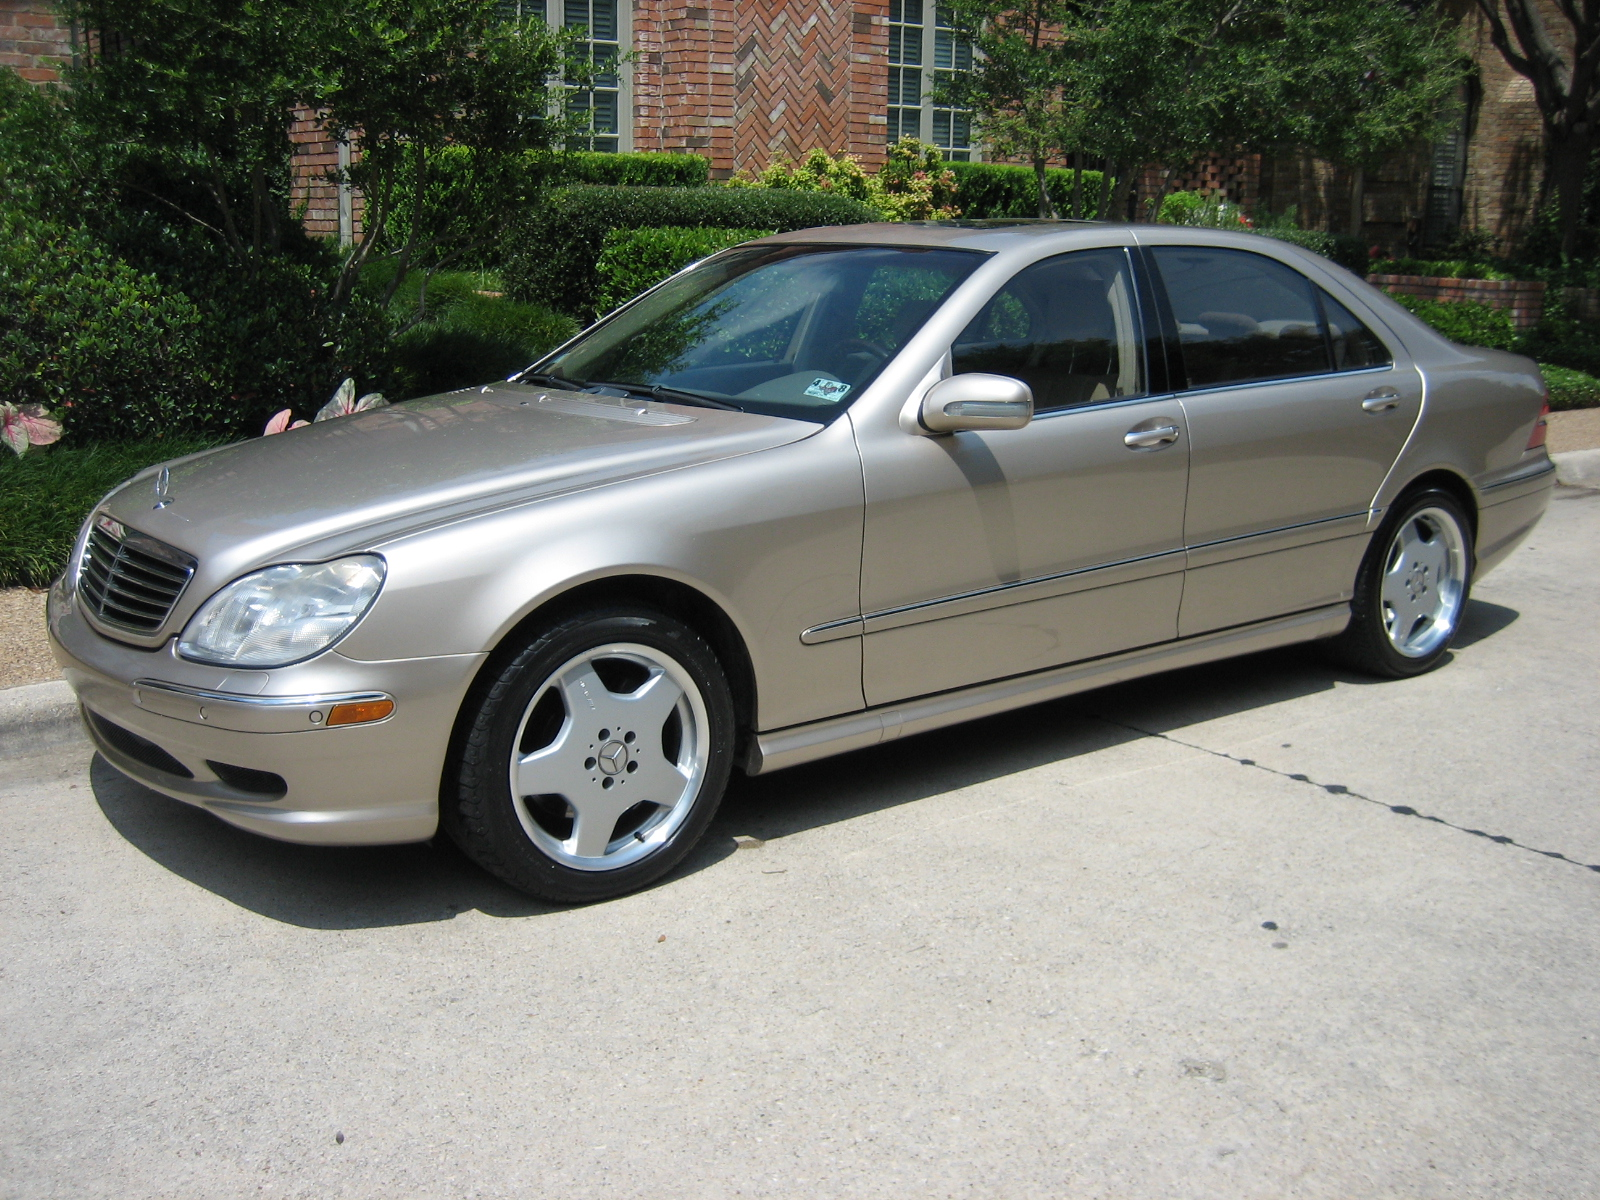 Mercedes benz s 500 technical details history photos on for Www mercedes benz parts